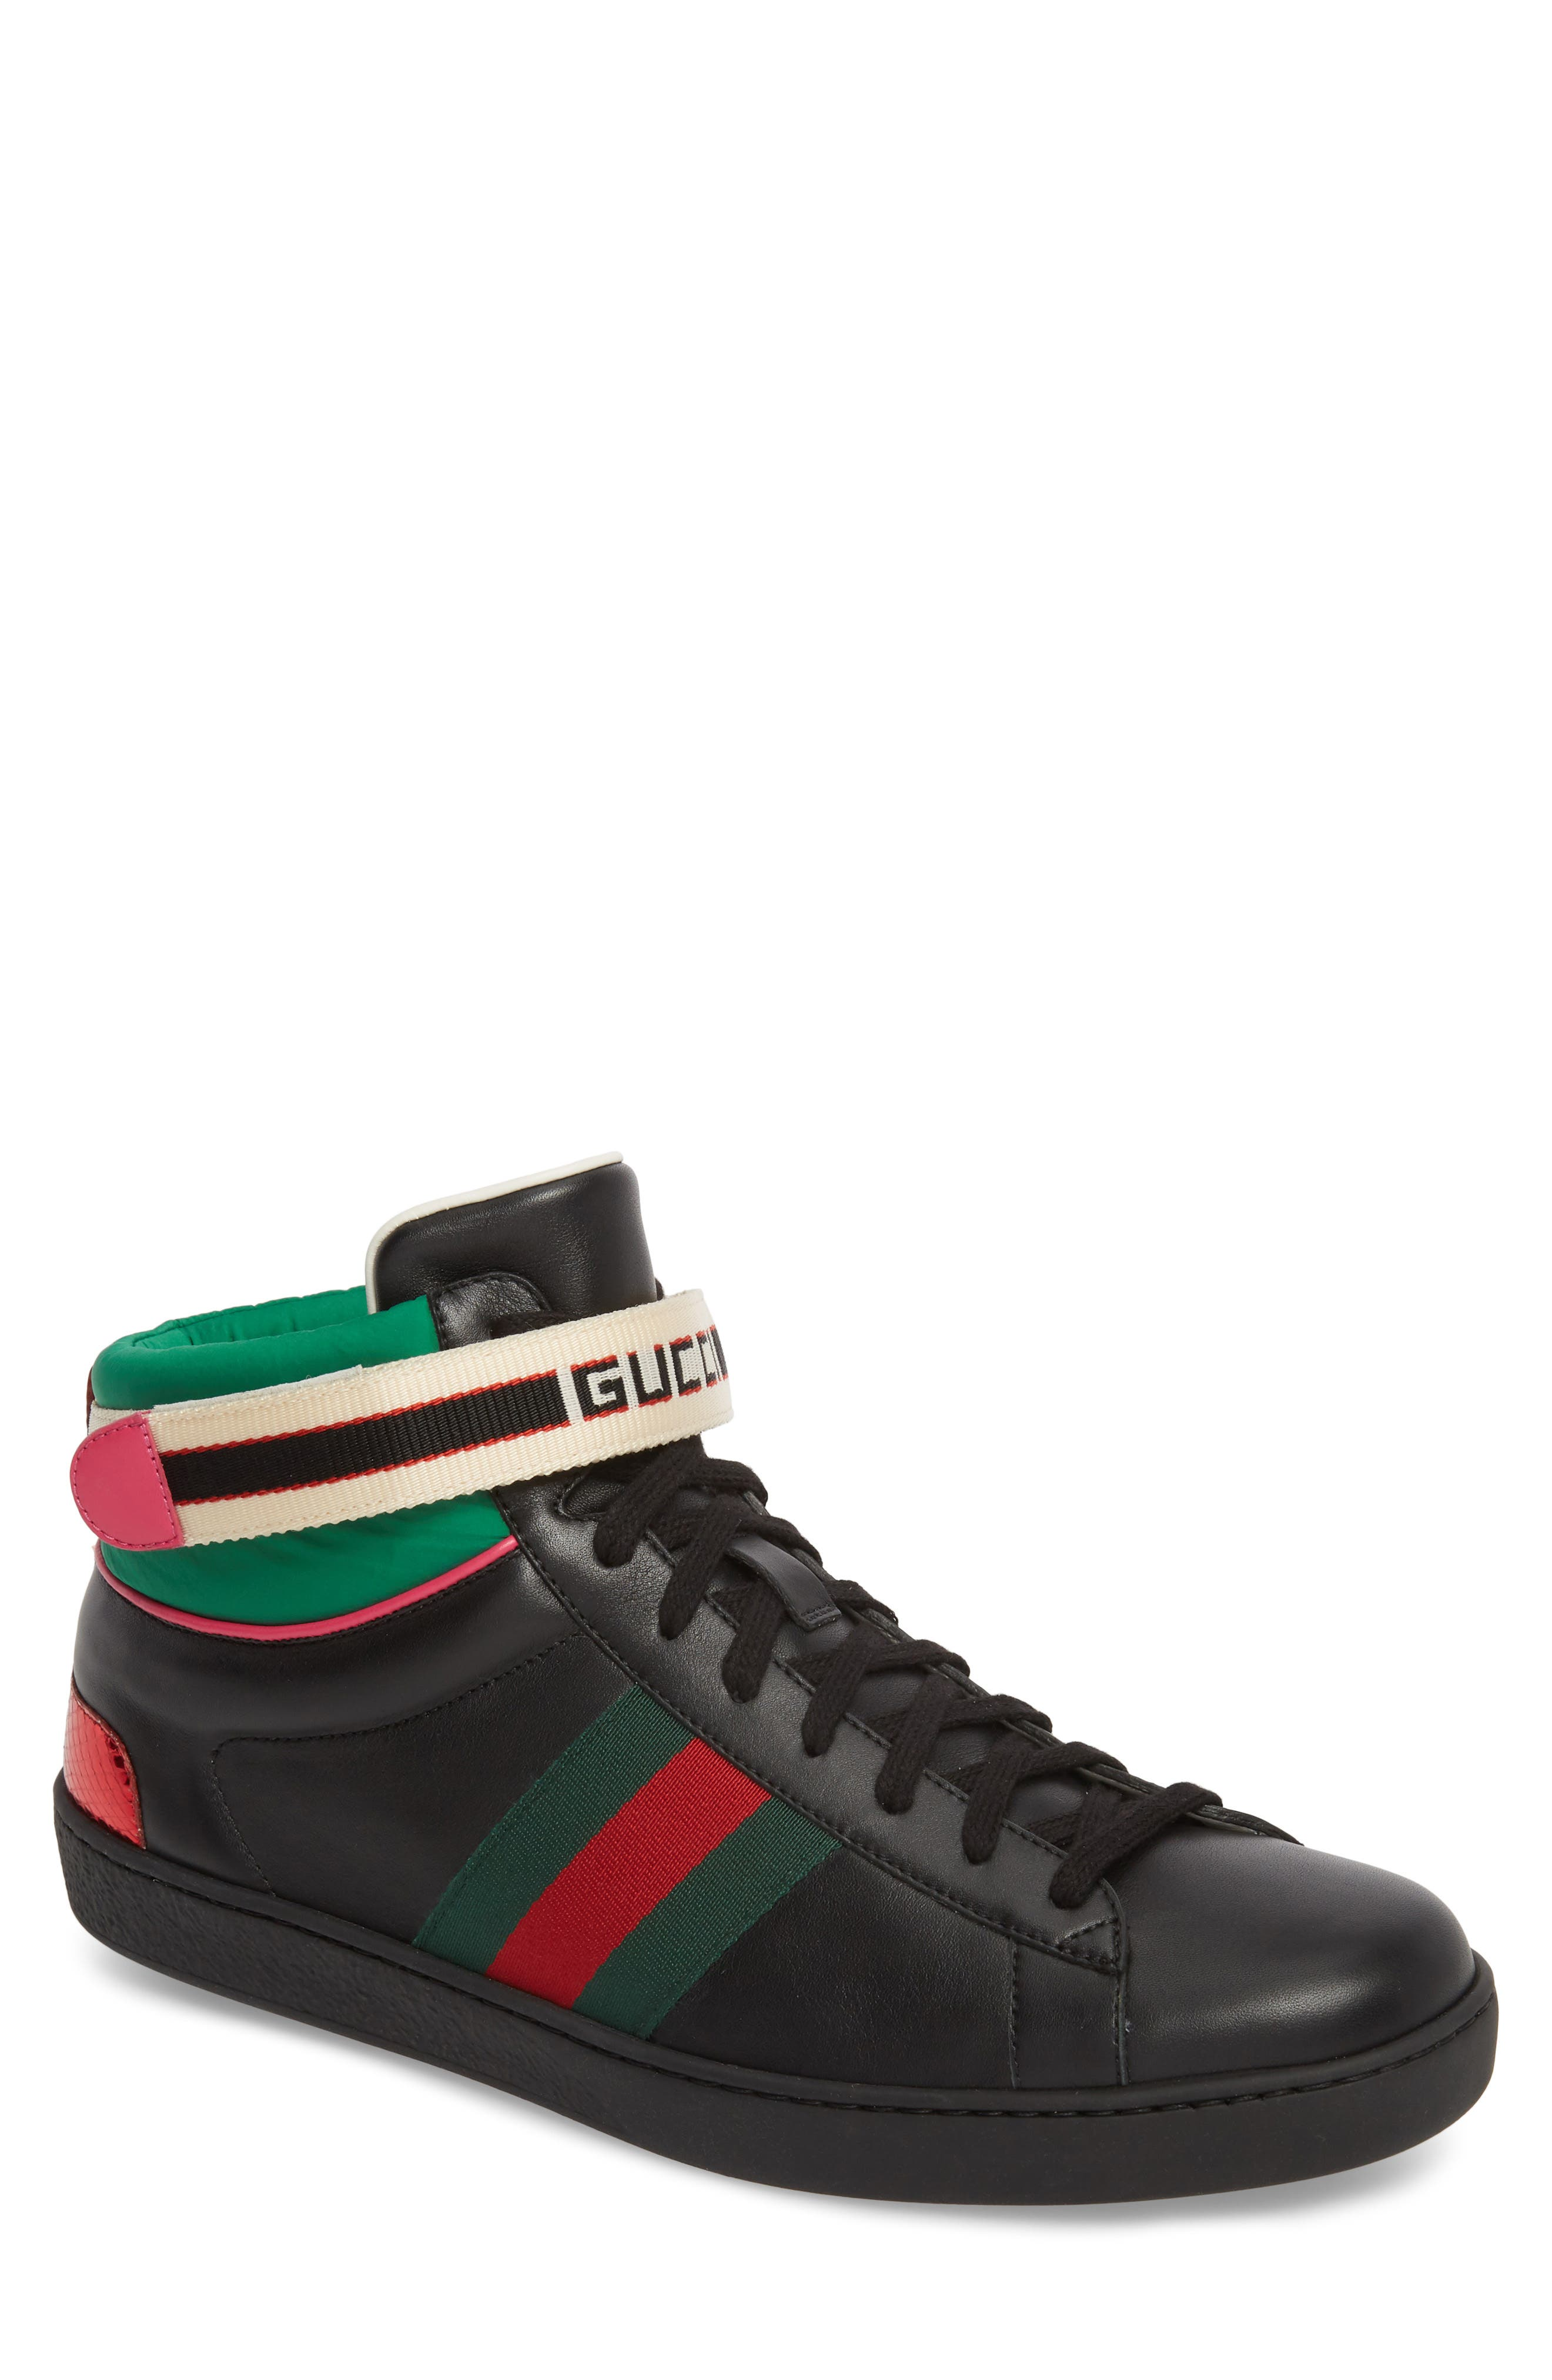 GUCCI, New Ace Stripe High Top Sneaker, Main thumbnail 1, color, BLACK